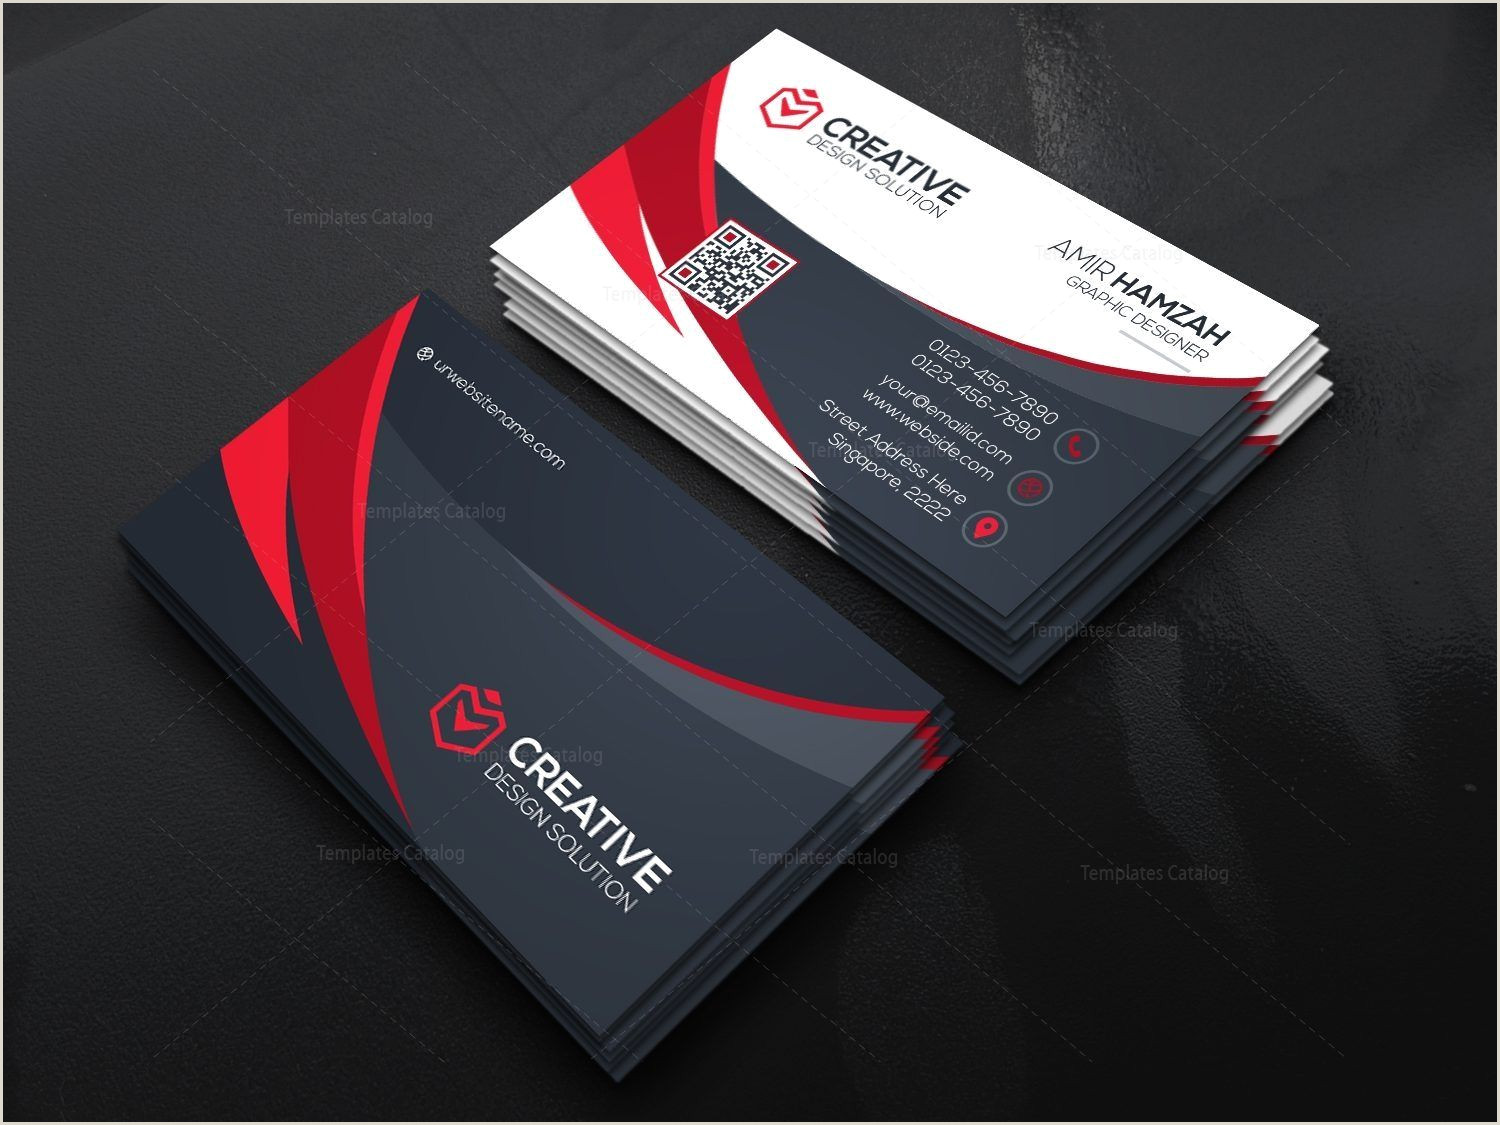 Sample Business Card Designs Stylish Psd Business Card Templates Graphic Templates